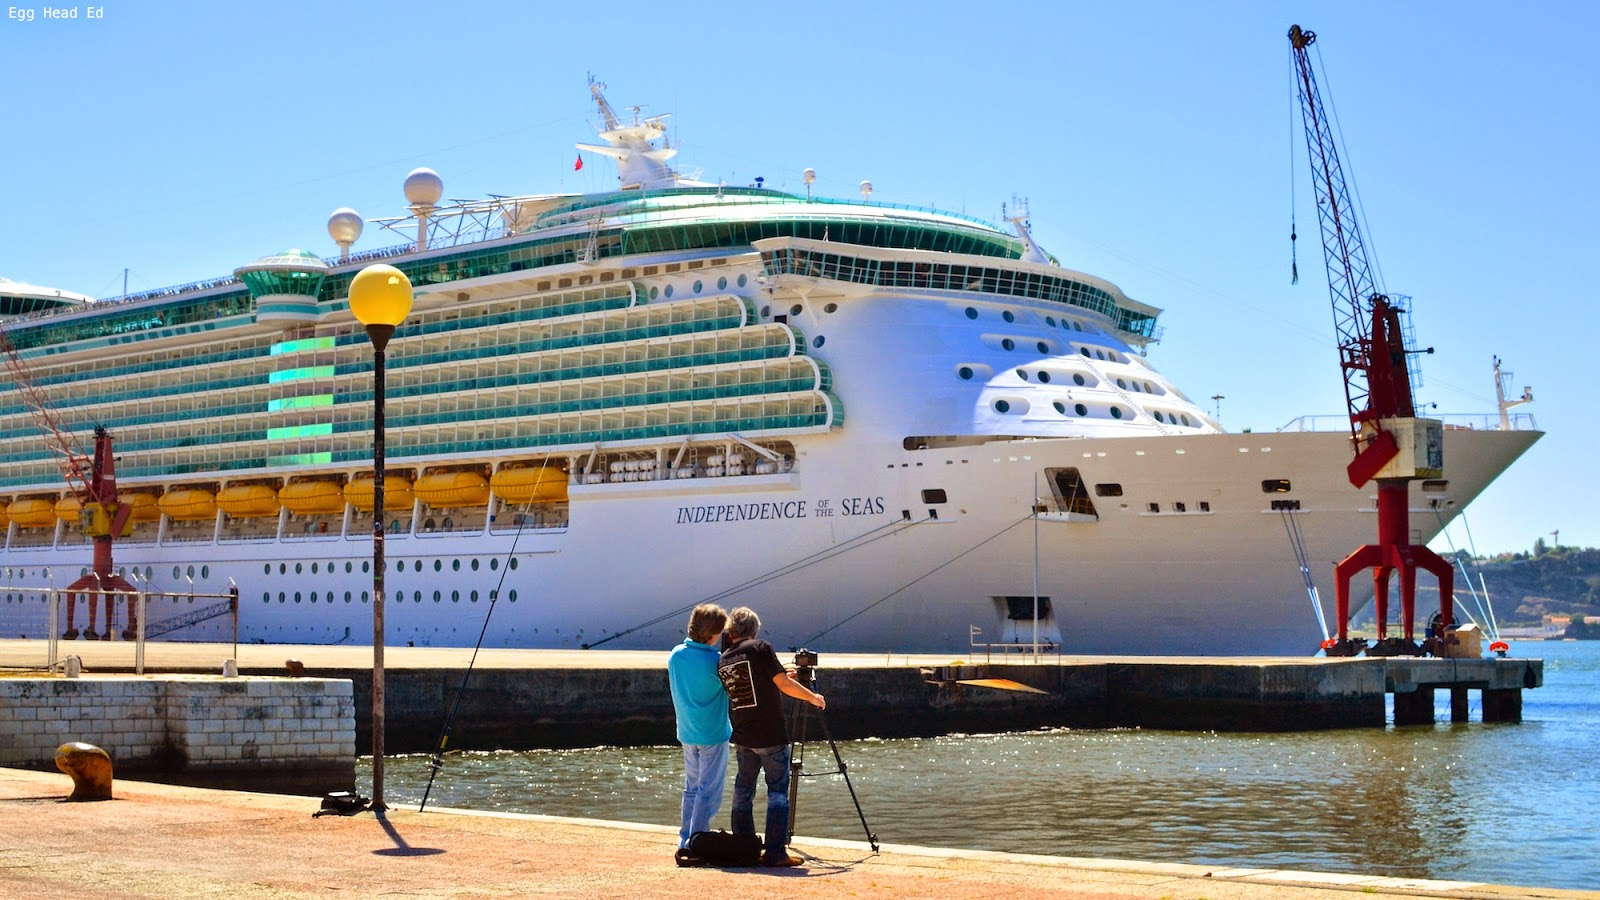 Independence of the Seas in Lisbon Portugal